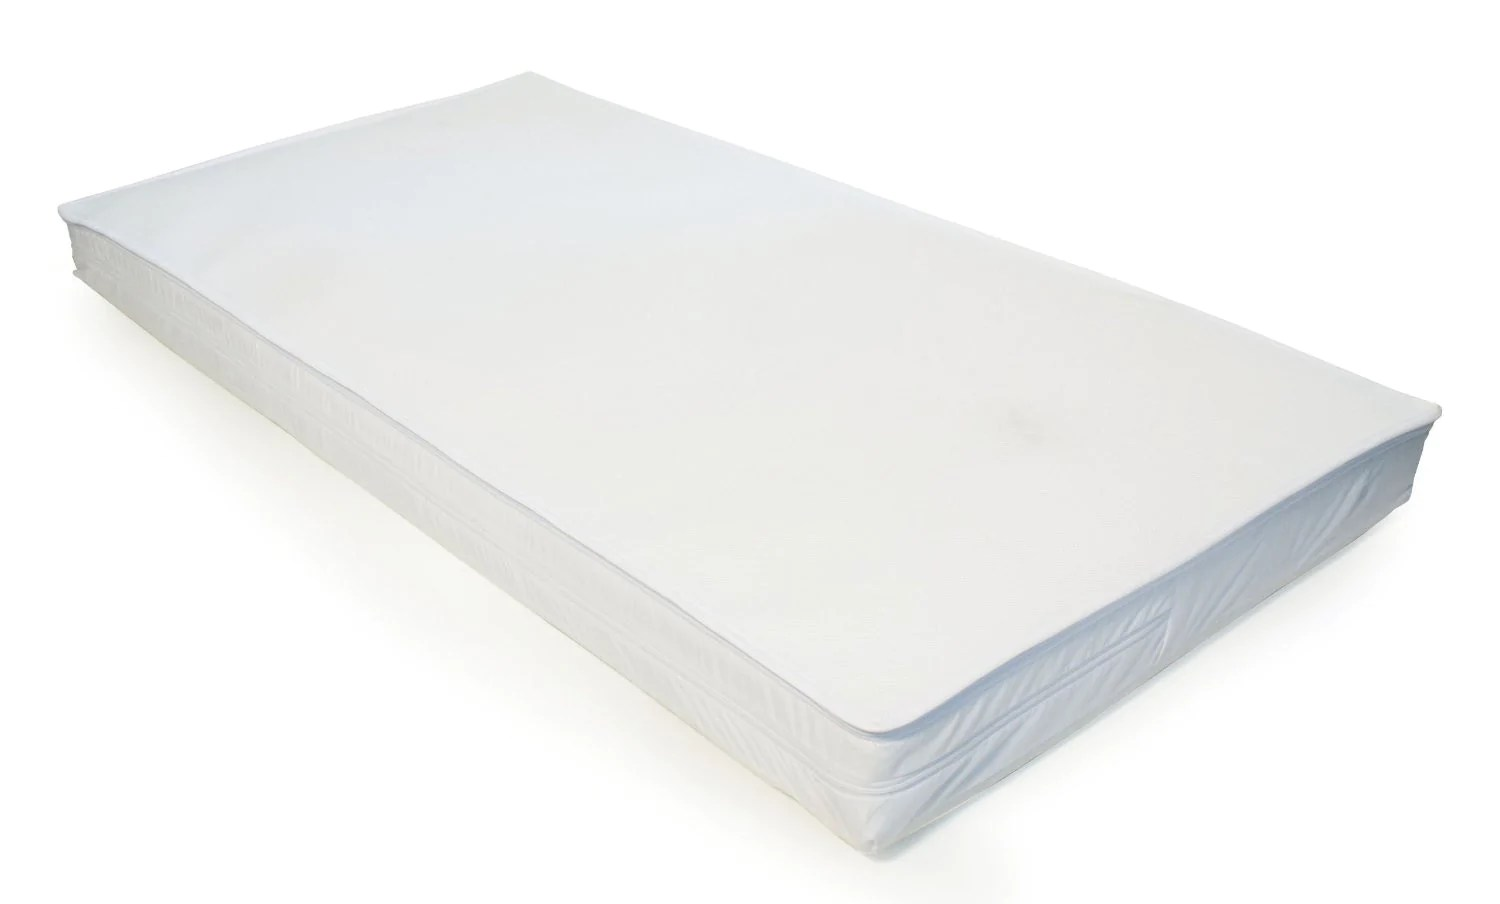 Quality Mattress Uk Welcome To Baby Travel Ltd Exclusive British Designer And